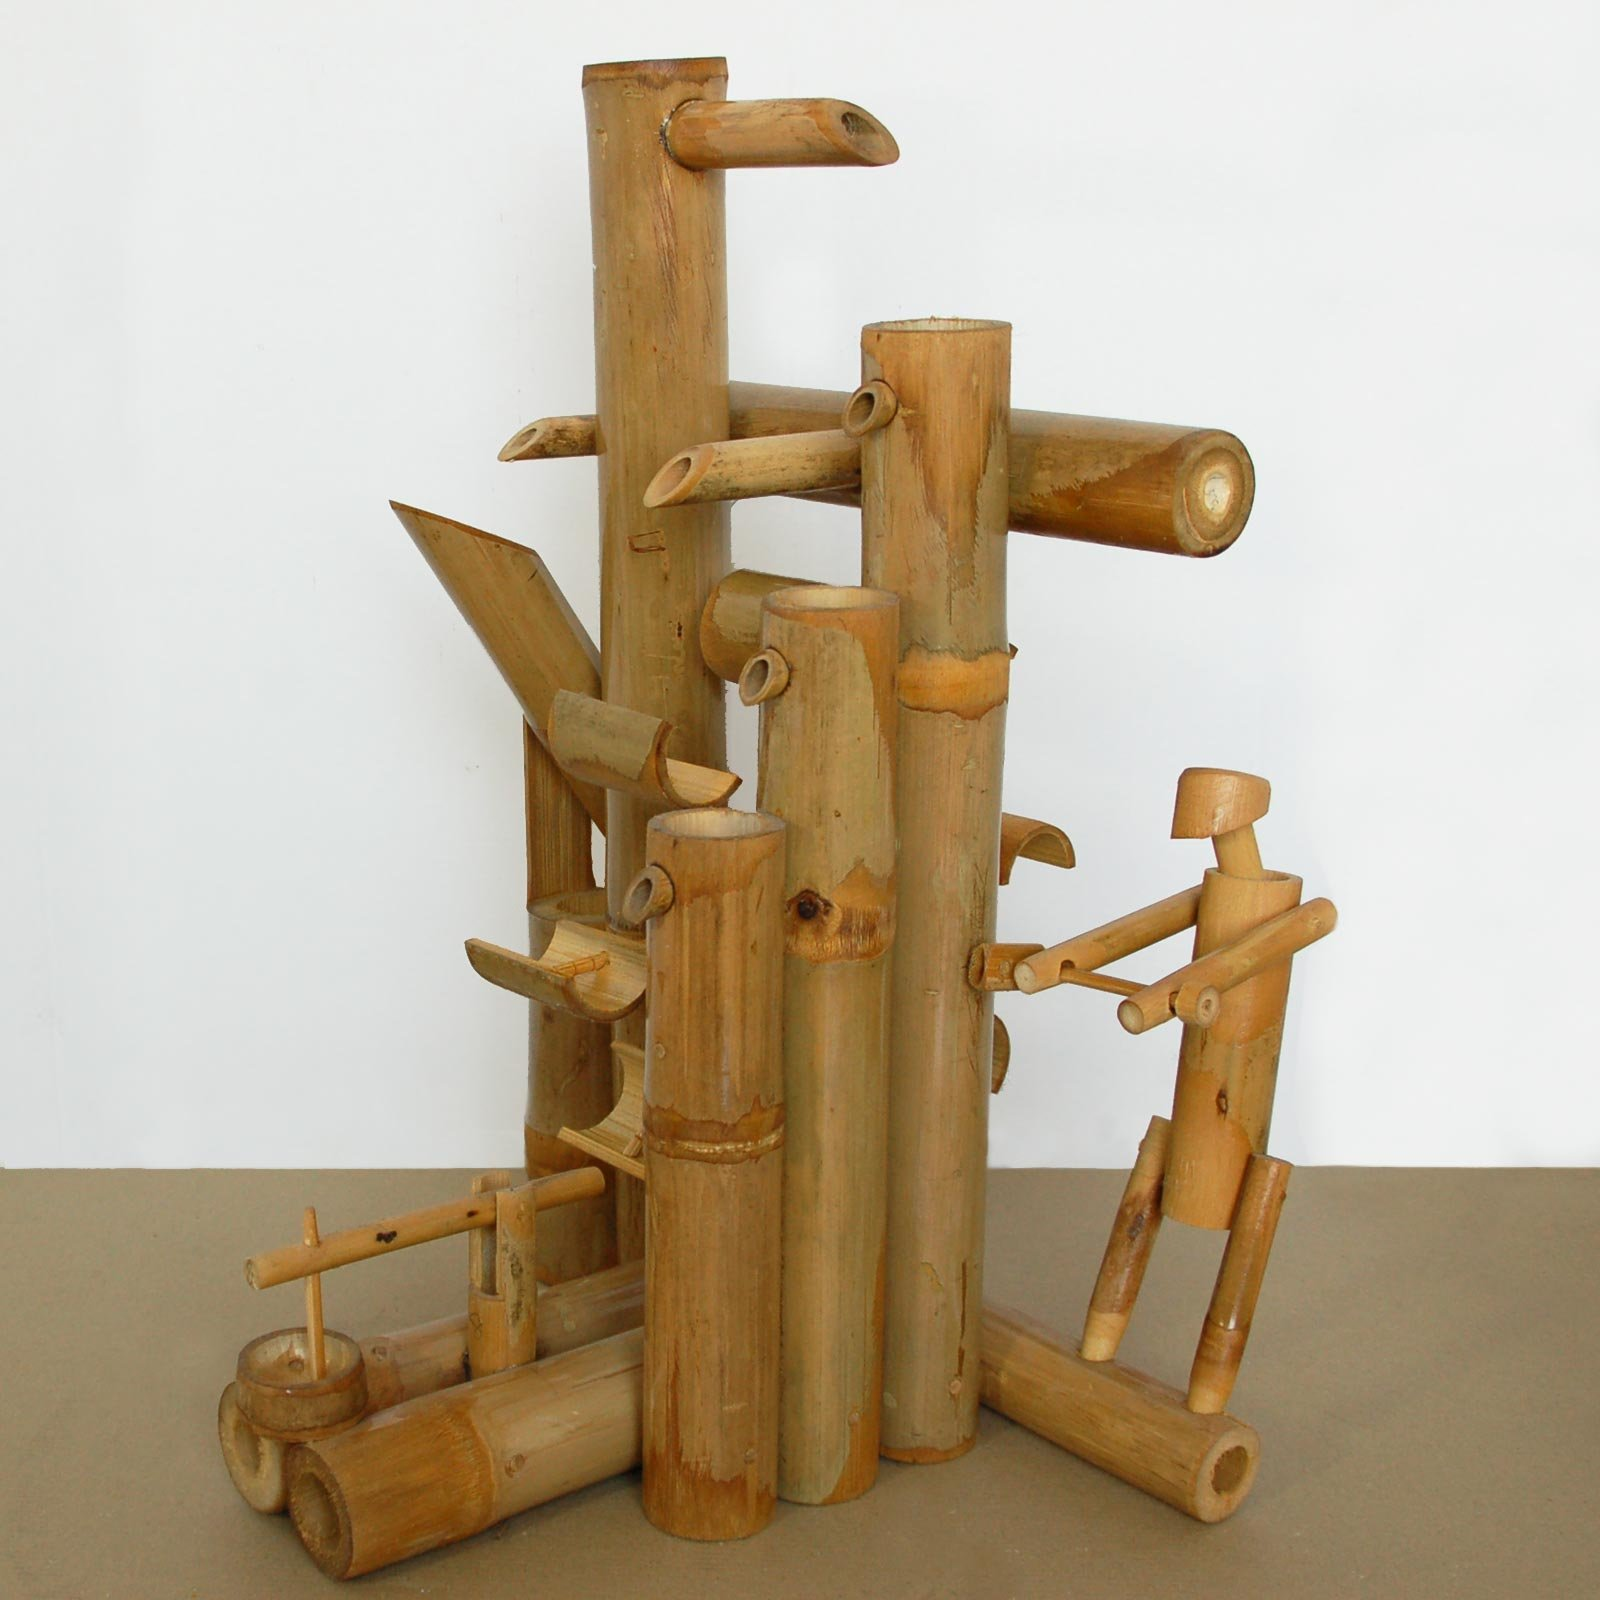 Bamboo fountain, water game, watefall, handmade, imported from Thailand (12032)